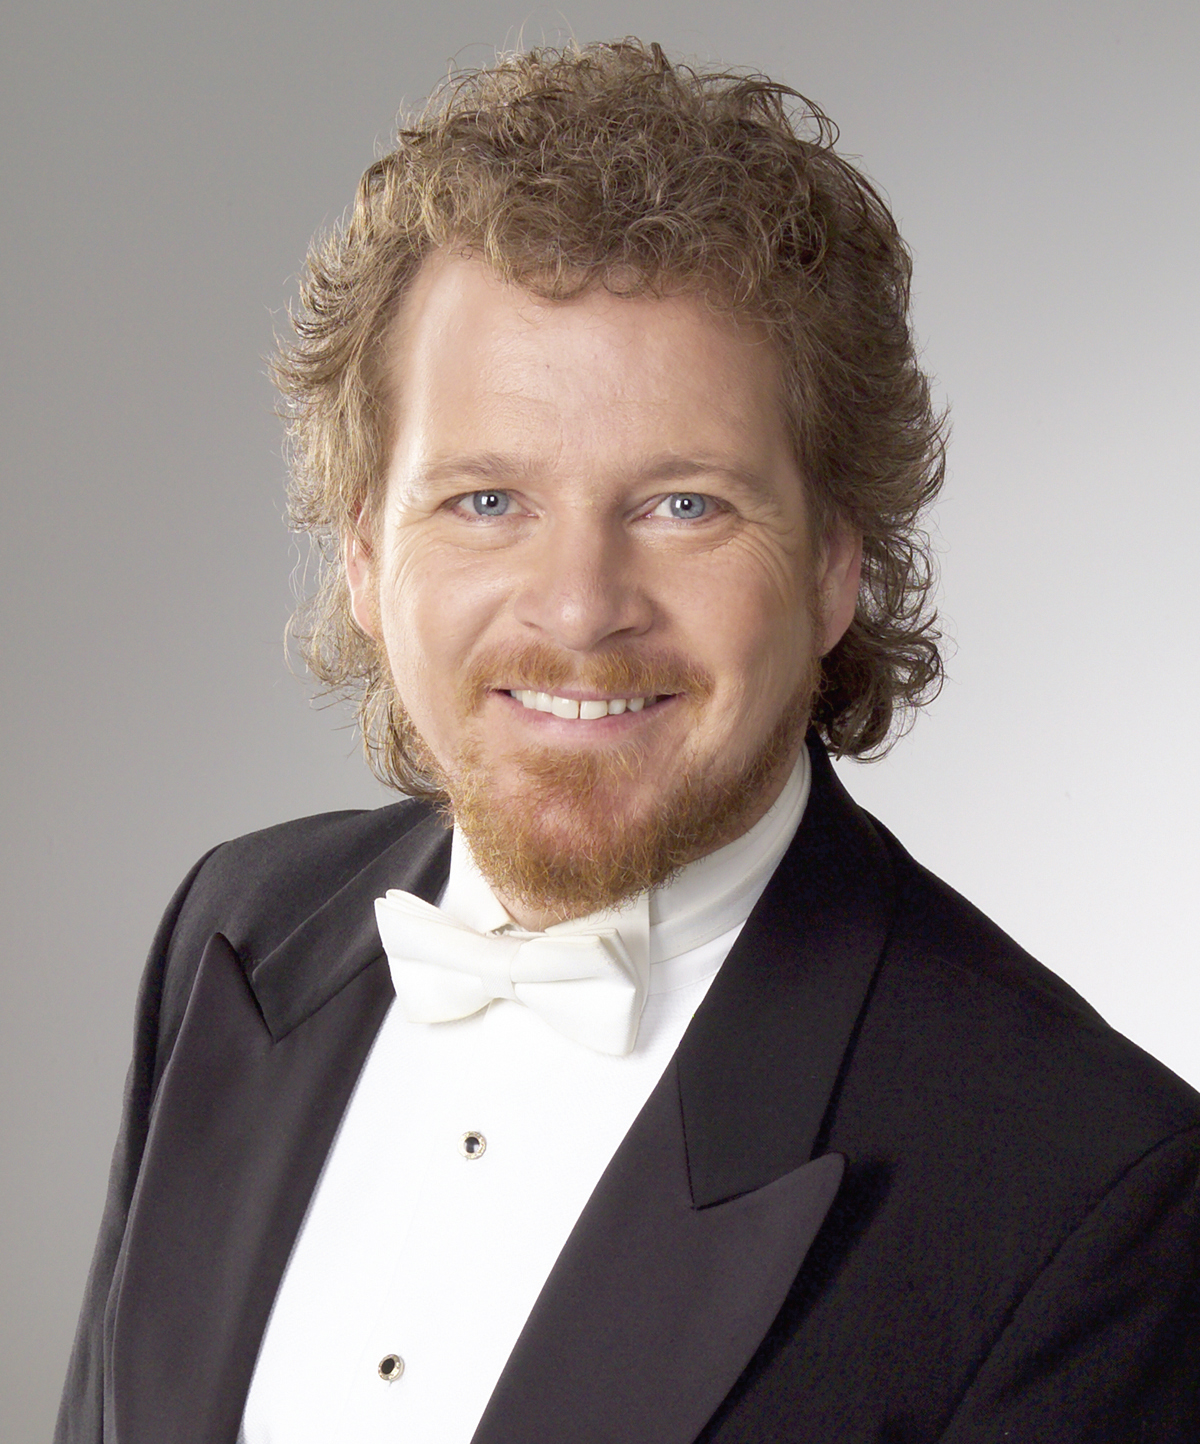 David Stewart Wiley, music director and conductor, Roanoke Symphony Orchestra